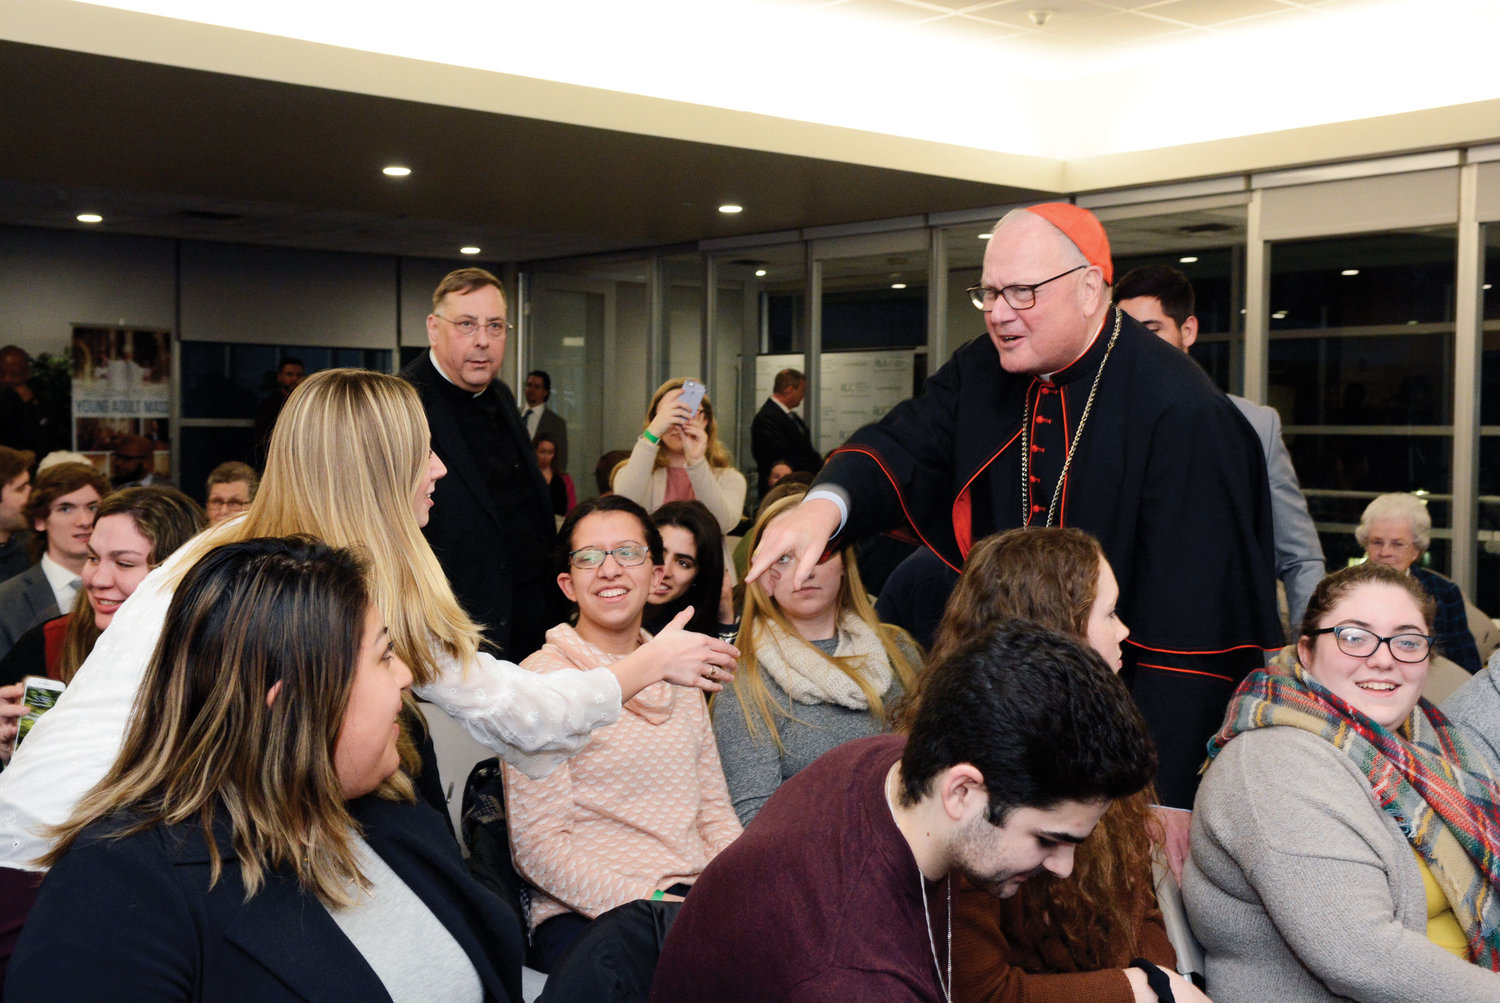 Cardinal Dolan greets college students at Rockland Community College's Student Union building in Suffern Feb. 28.